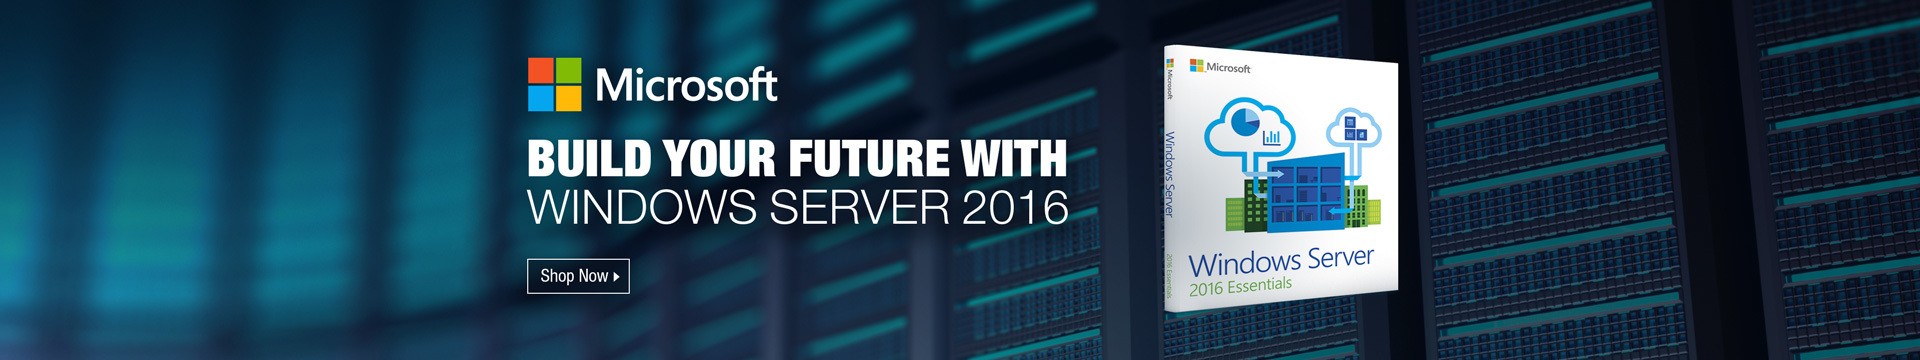 Build Your Future with Windows Sever 2016